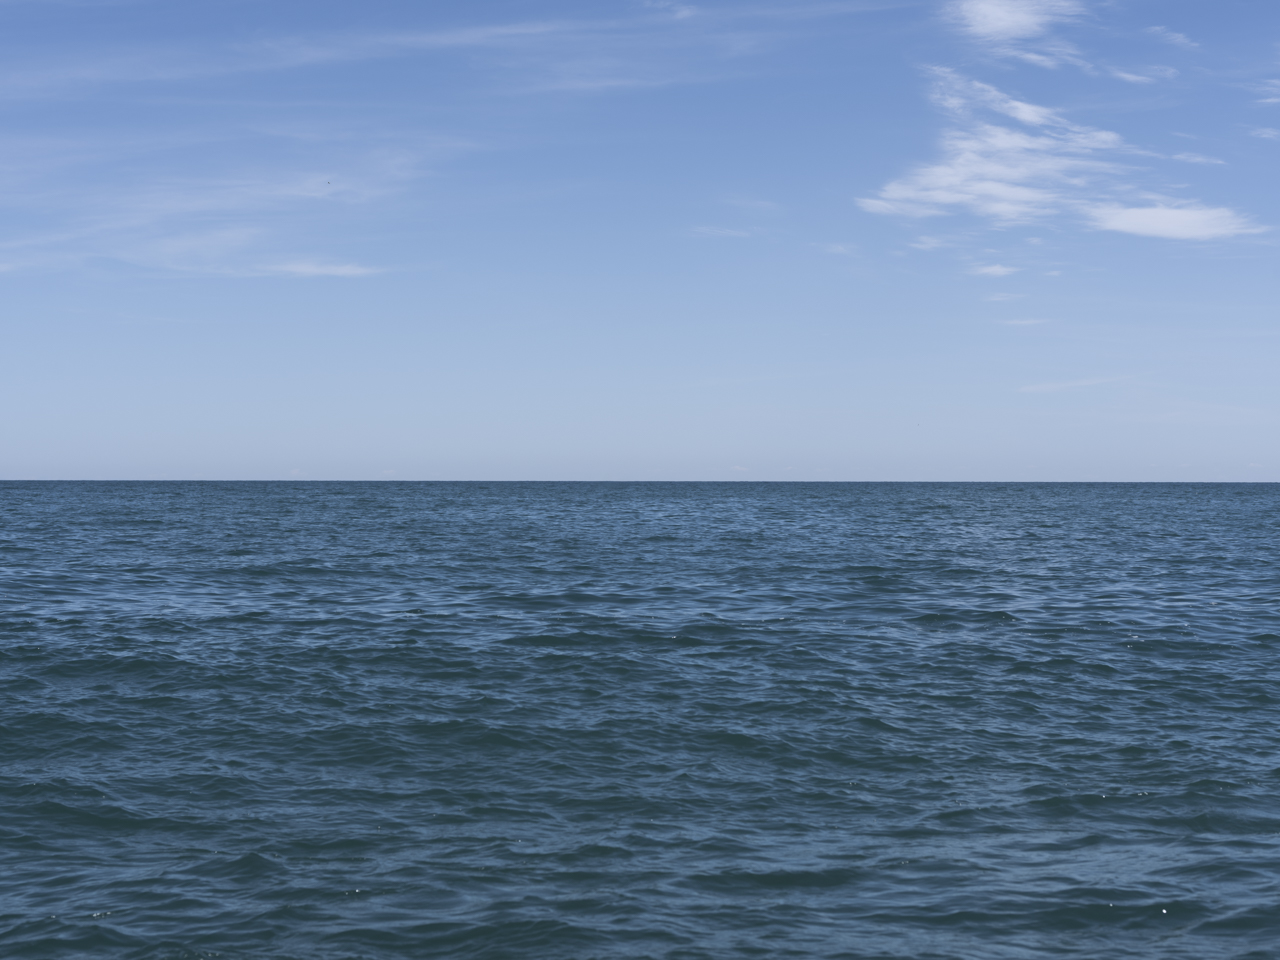 wisps of clouds sit high in the sky on another perfectly beautiful blue day on Lake Michigan